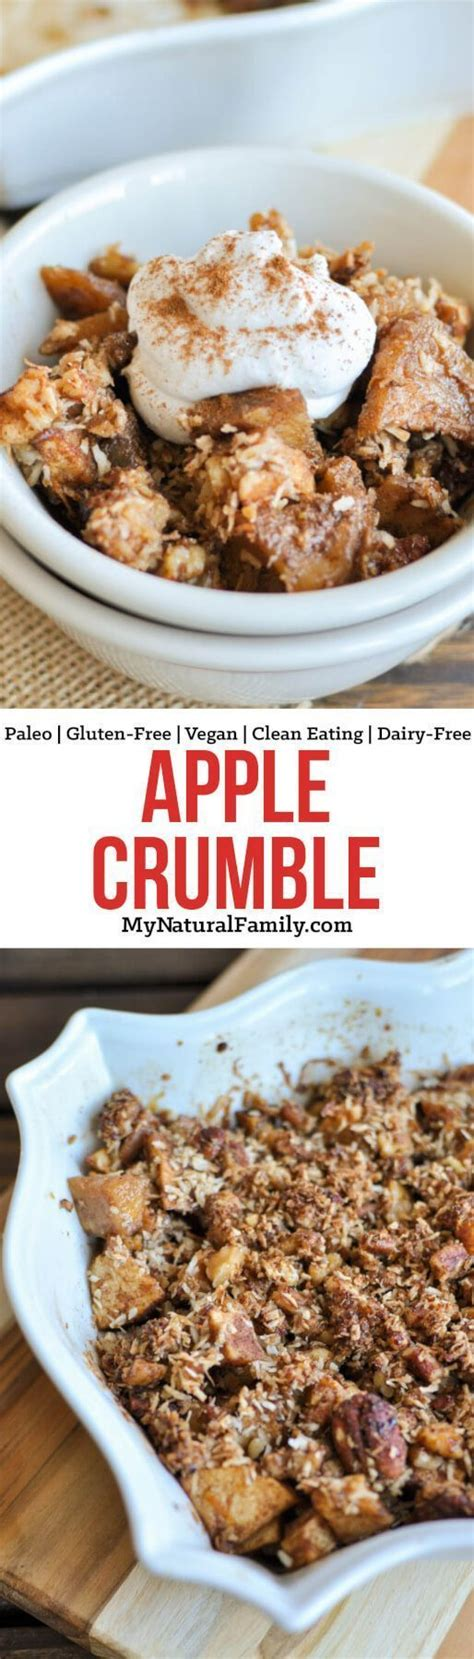 This Paleo apple crumble is a healthy dessert made without